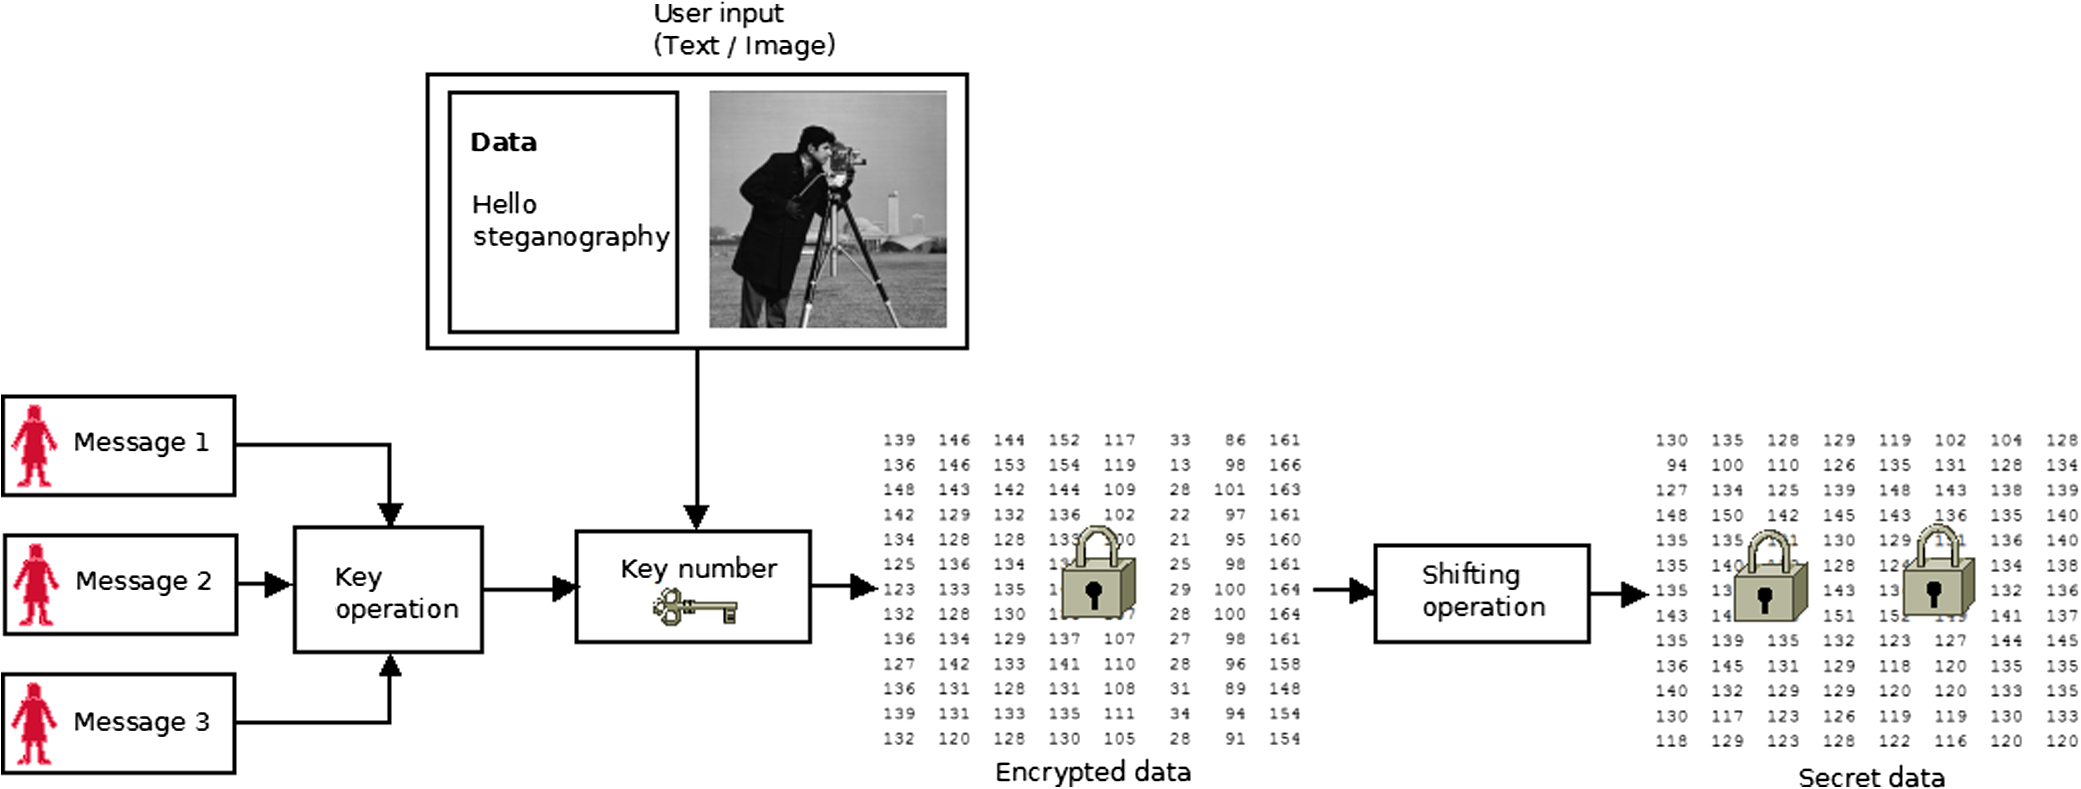 Image steganography based on LSB substitution and encryption